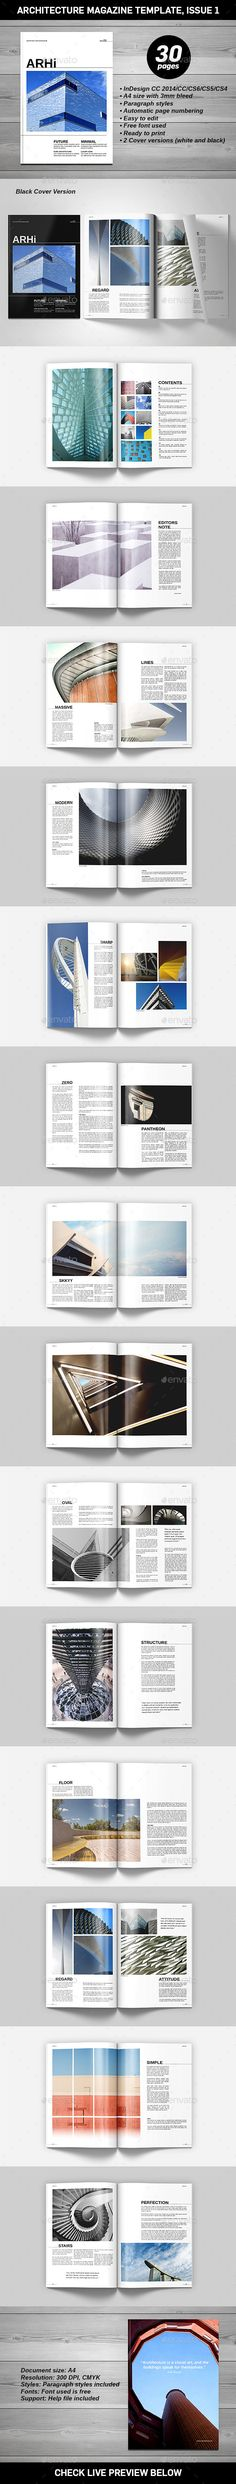 Architecture Magazine Template #design #journal Download: http://graphicriver.net/item/architecture-magazine-template/11432387?ref=ksioks